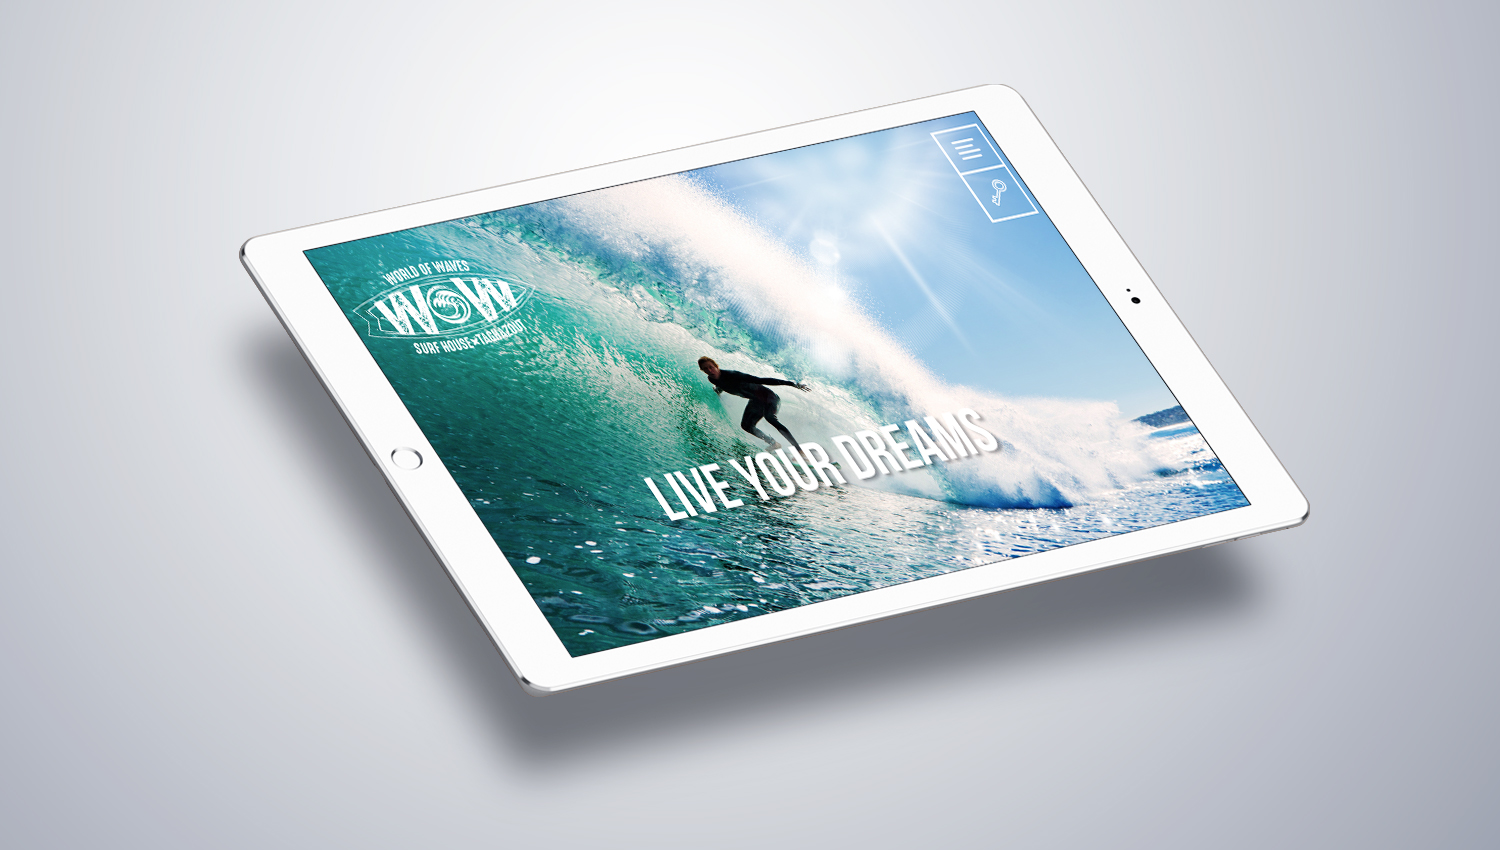 Web design laptop view for Word of Waves 2 by 8 Ways